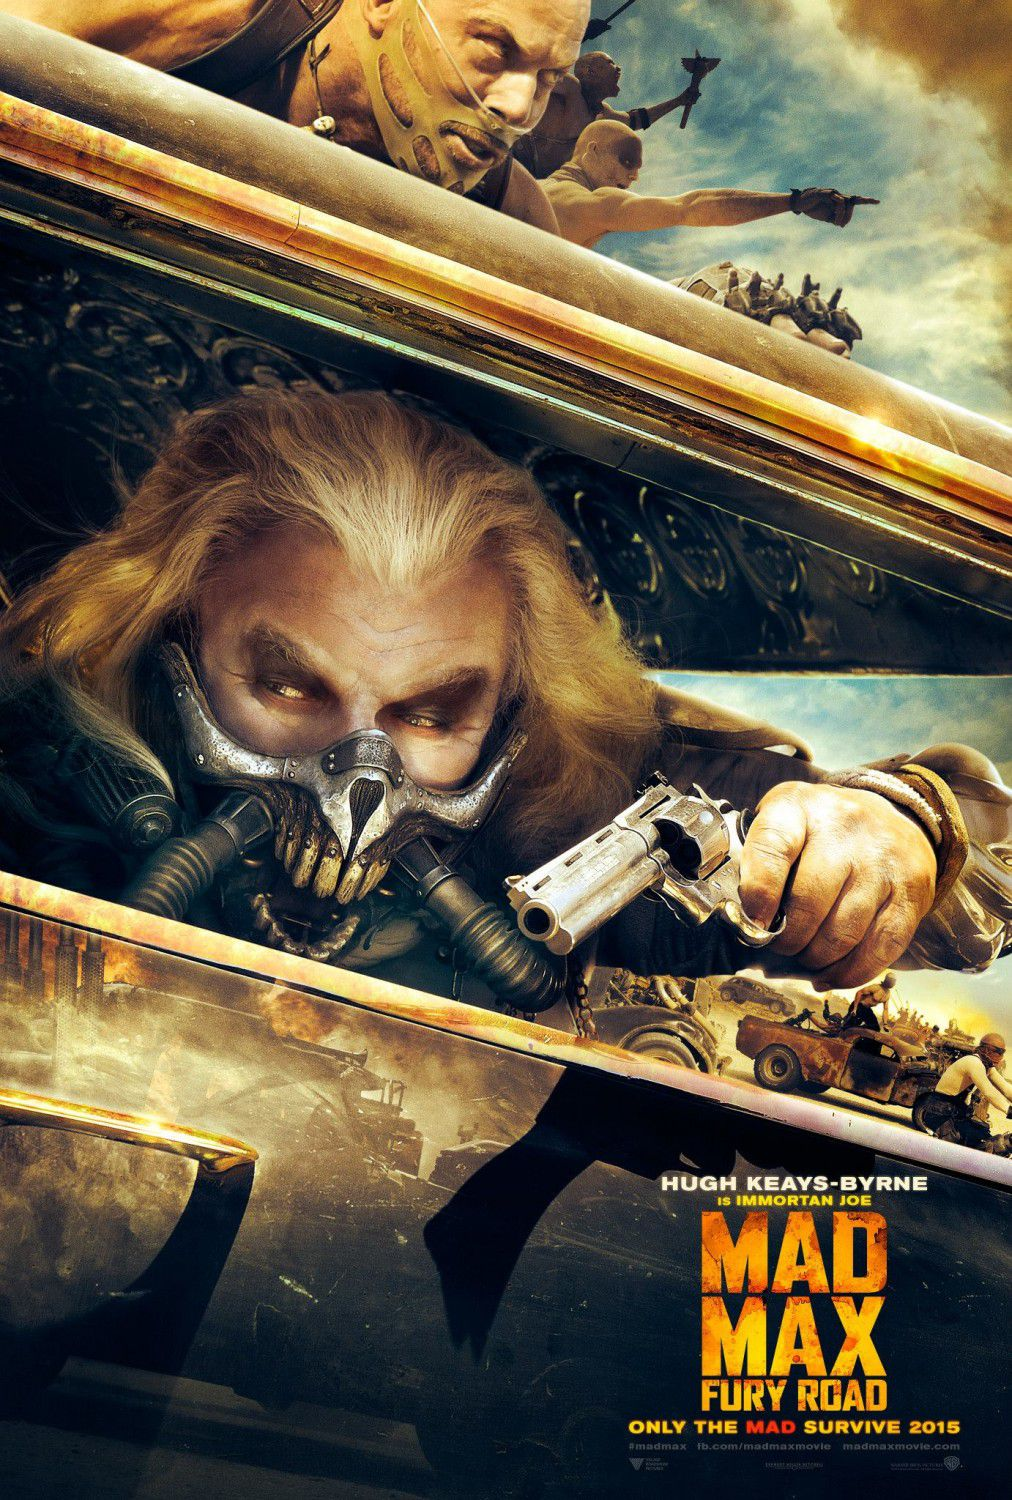 Hugh Keays-Byrne is Immortan Joe